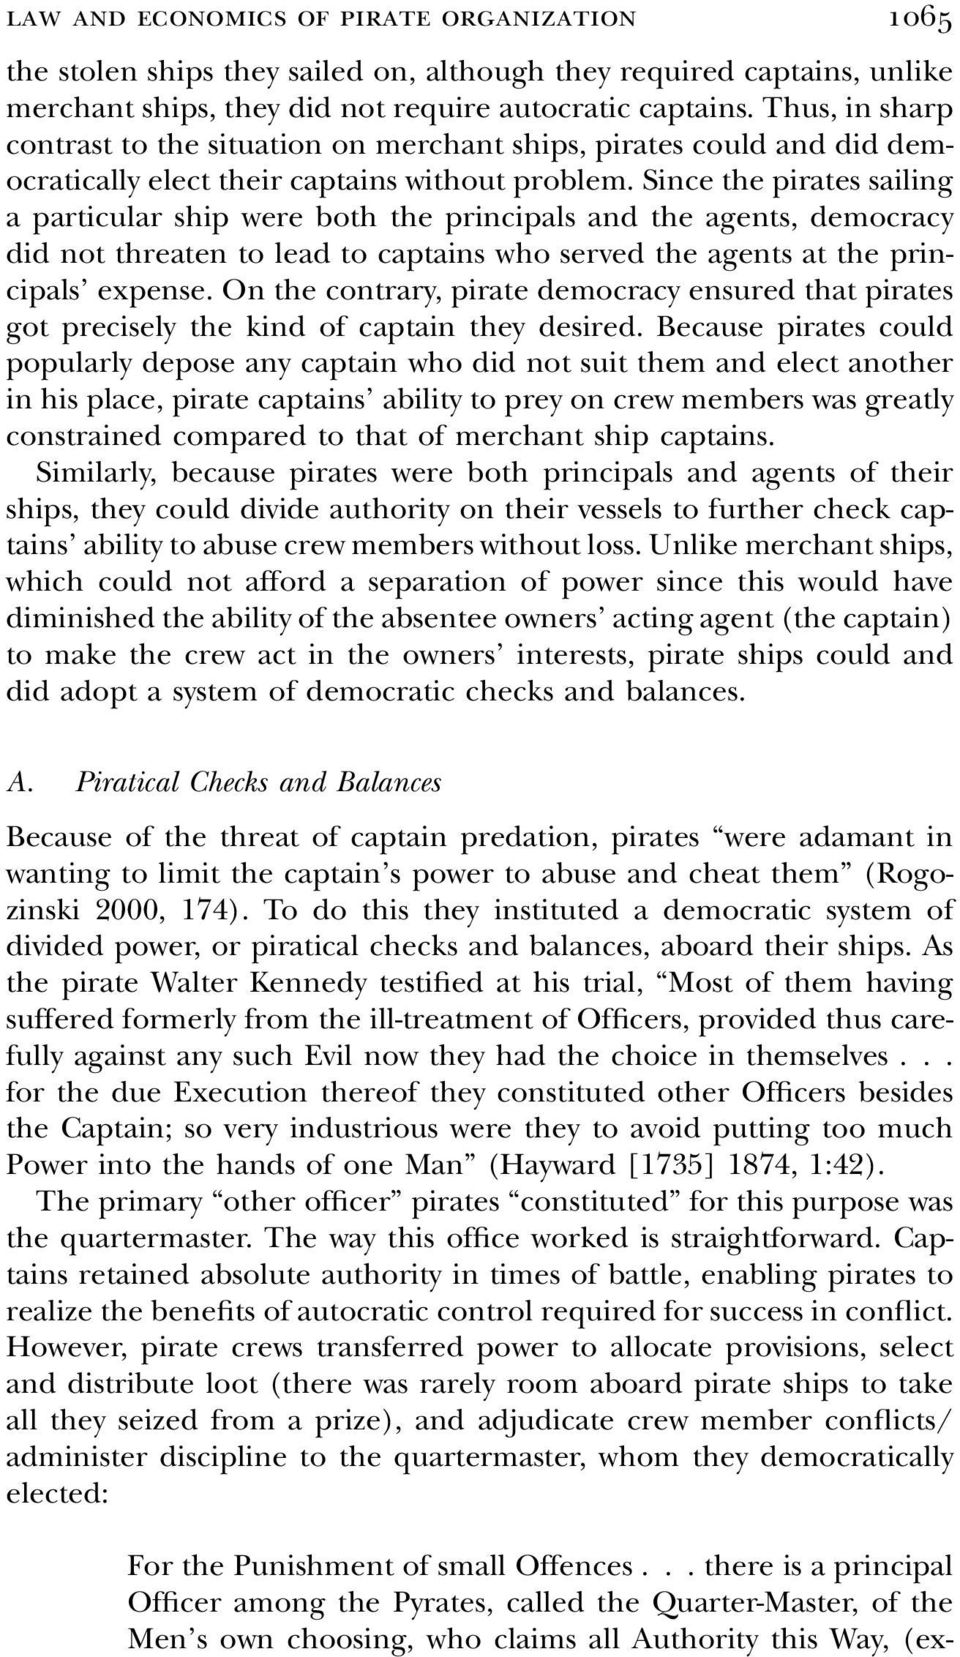 Since the pirates sailing a particular ship were both the principals and the agents, democracy did not threaten to lead to captains who served the agents at the principals expense.